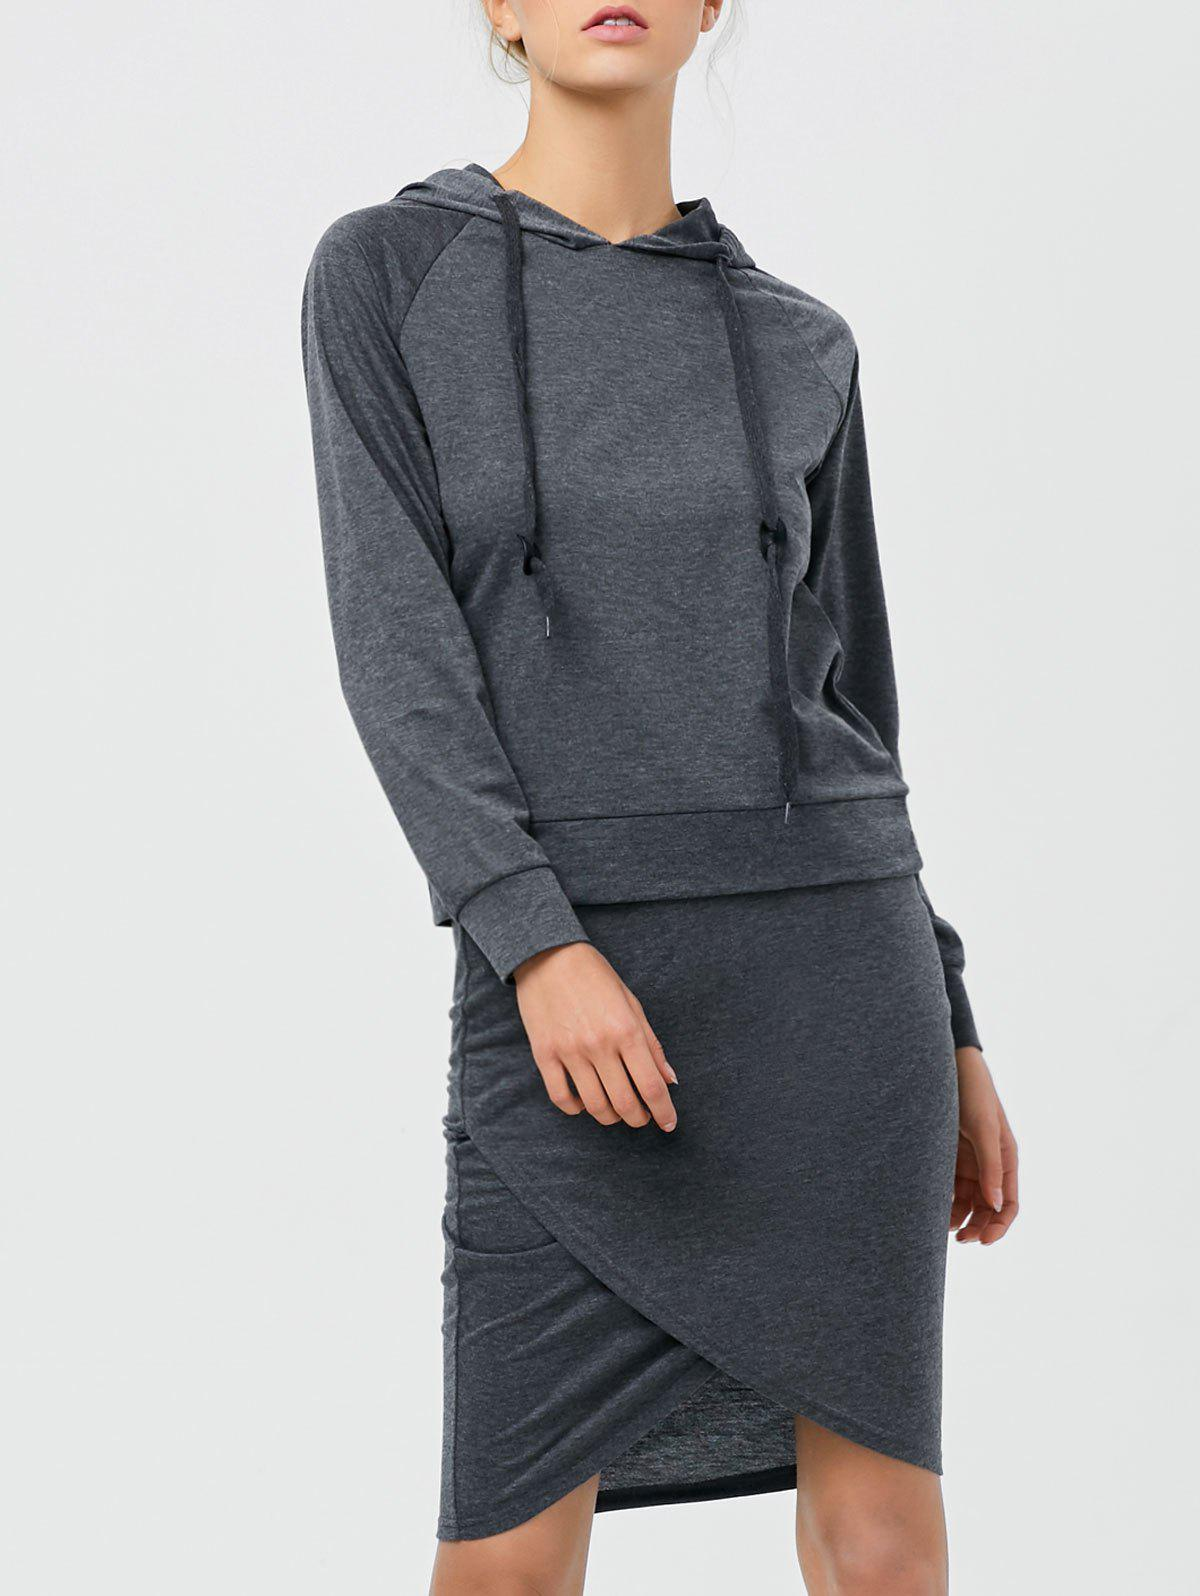 Drawstring Hoodie with Pencil Skirt - DEEP GRAY S